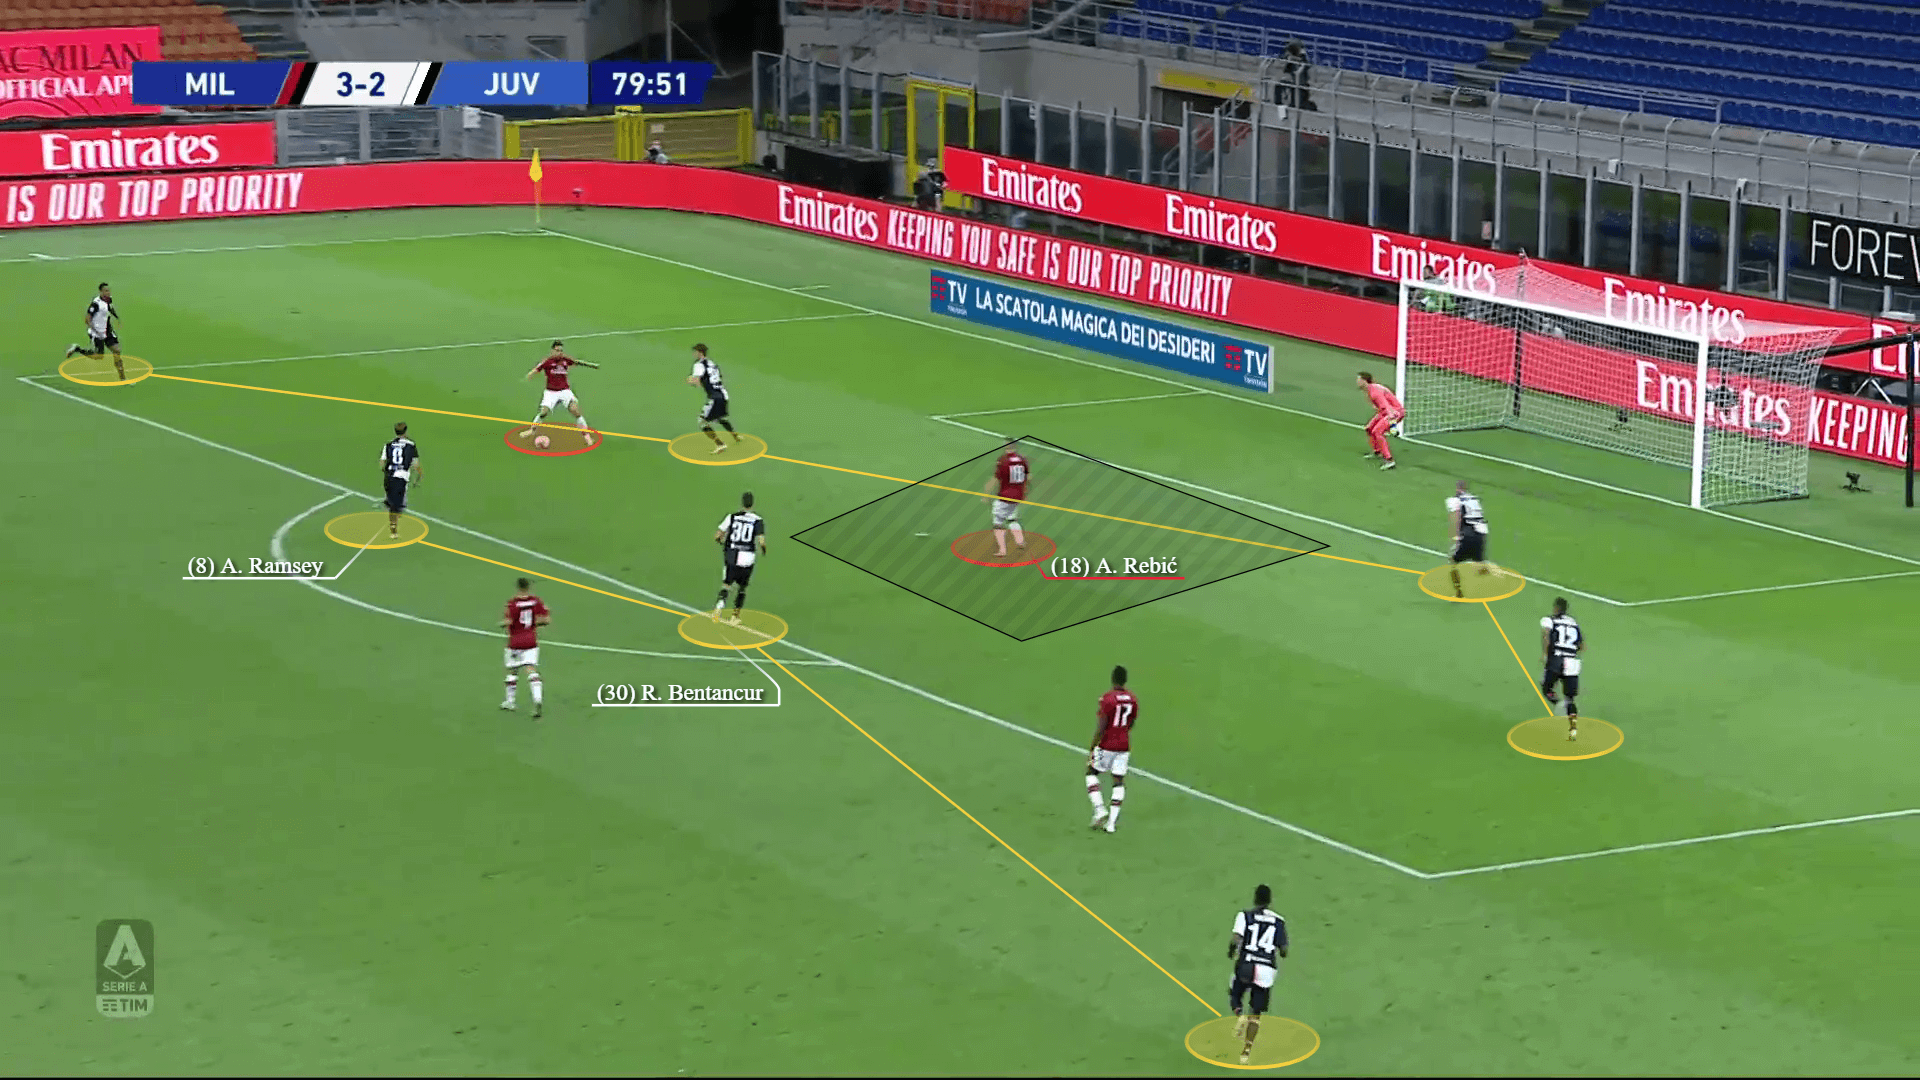 Juventus 2019/20: What's the reason behind their defensive vulnerability? - scout report - tactical analysis tactics